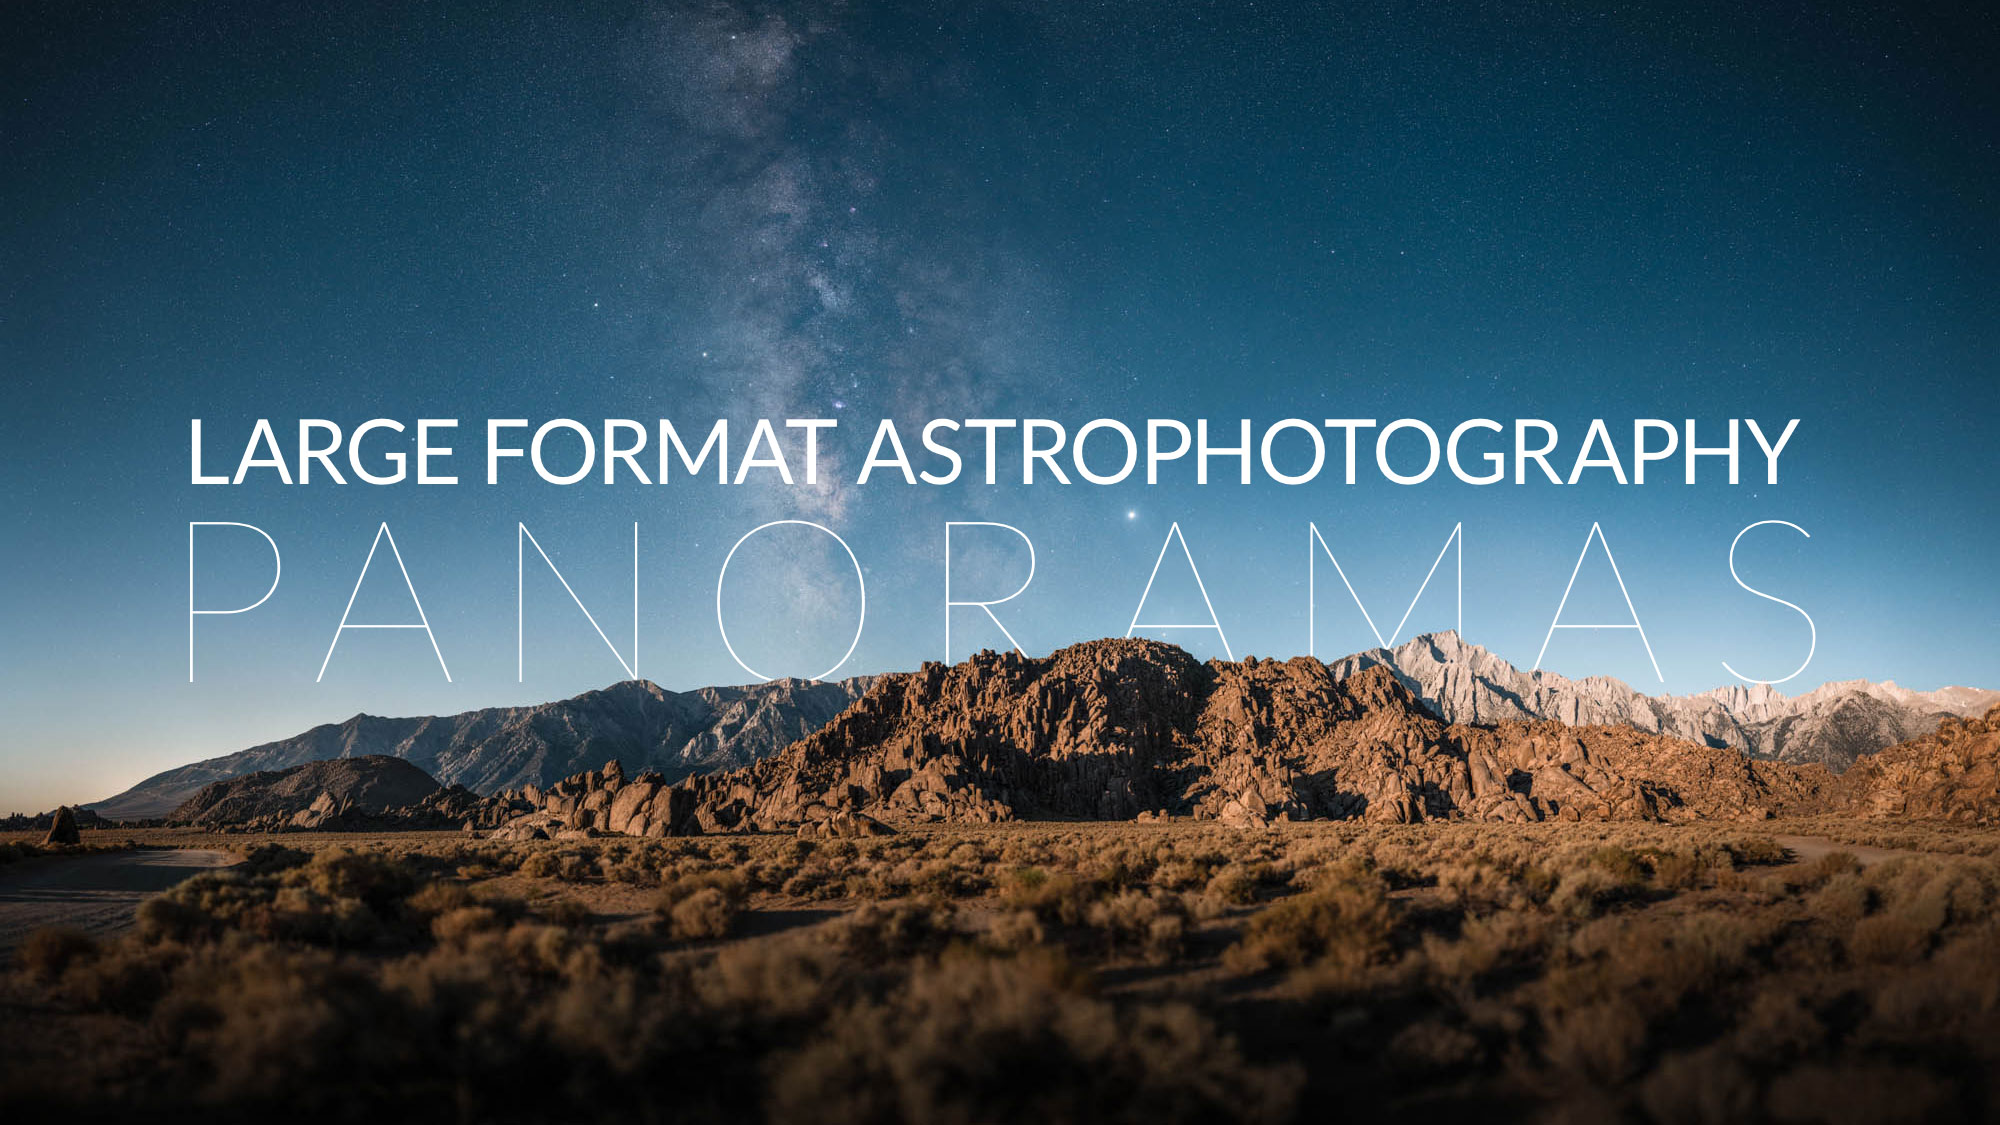 How to Shoot Large Format Astrophotography Panoramas with Any Camera